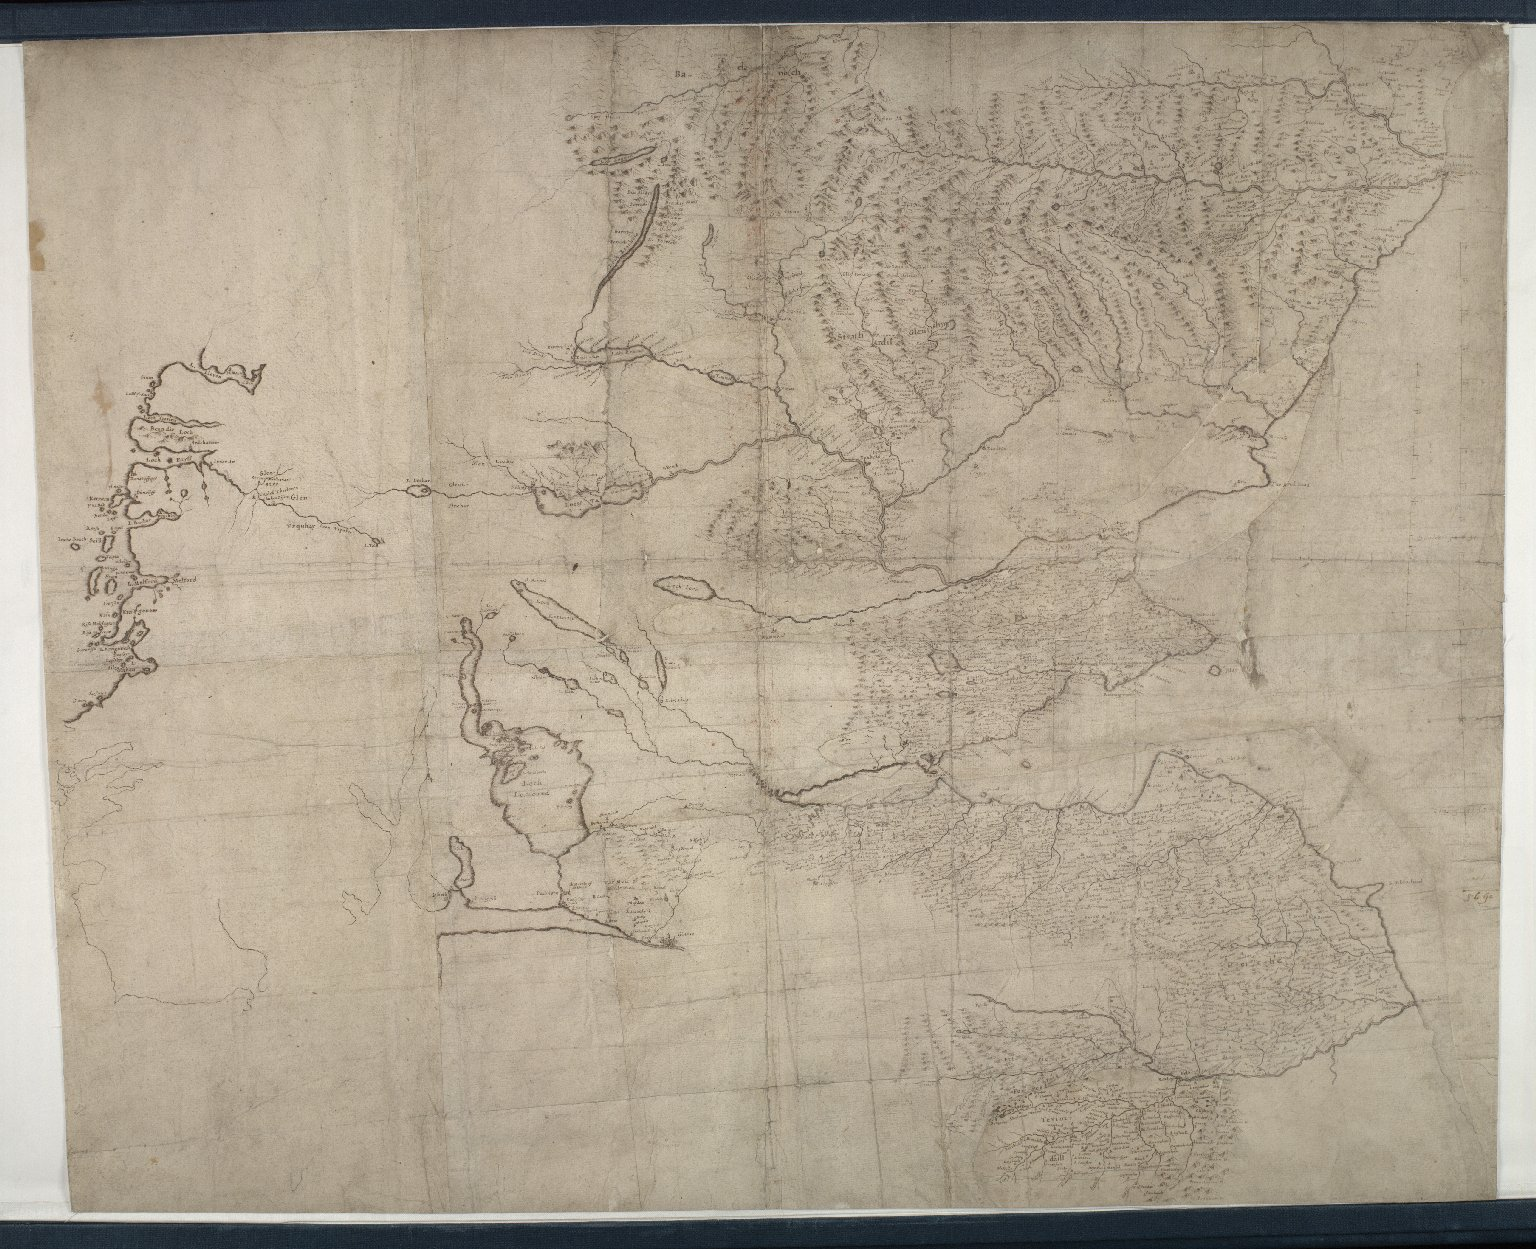 [A map of Eastern Scotland, including basins of Don, Dee, Tay, Forth, and Tweed] [4 of 4]